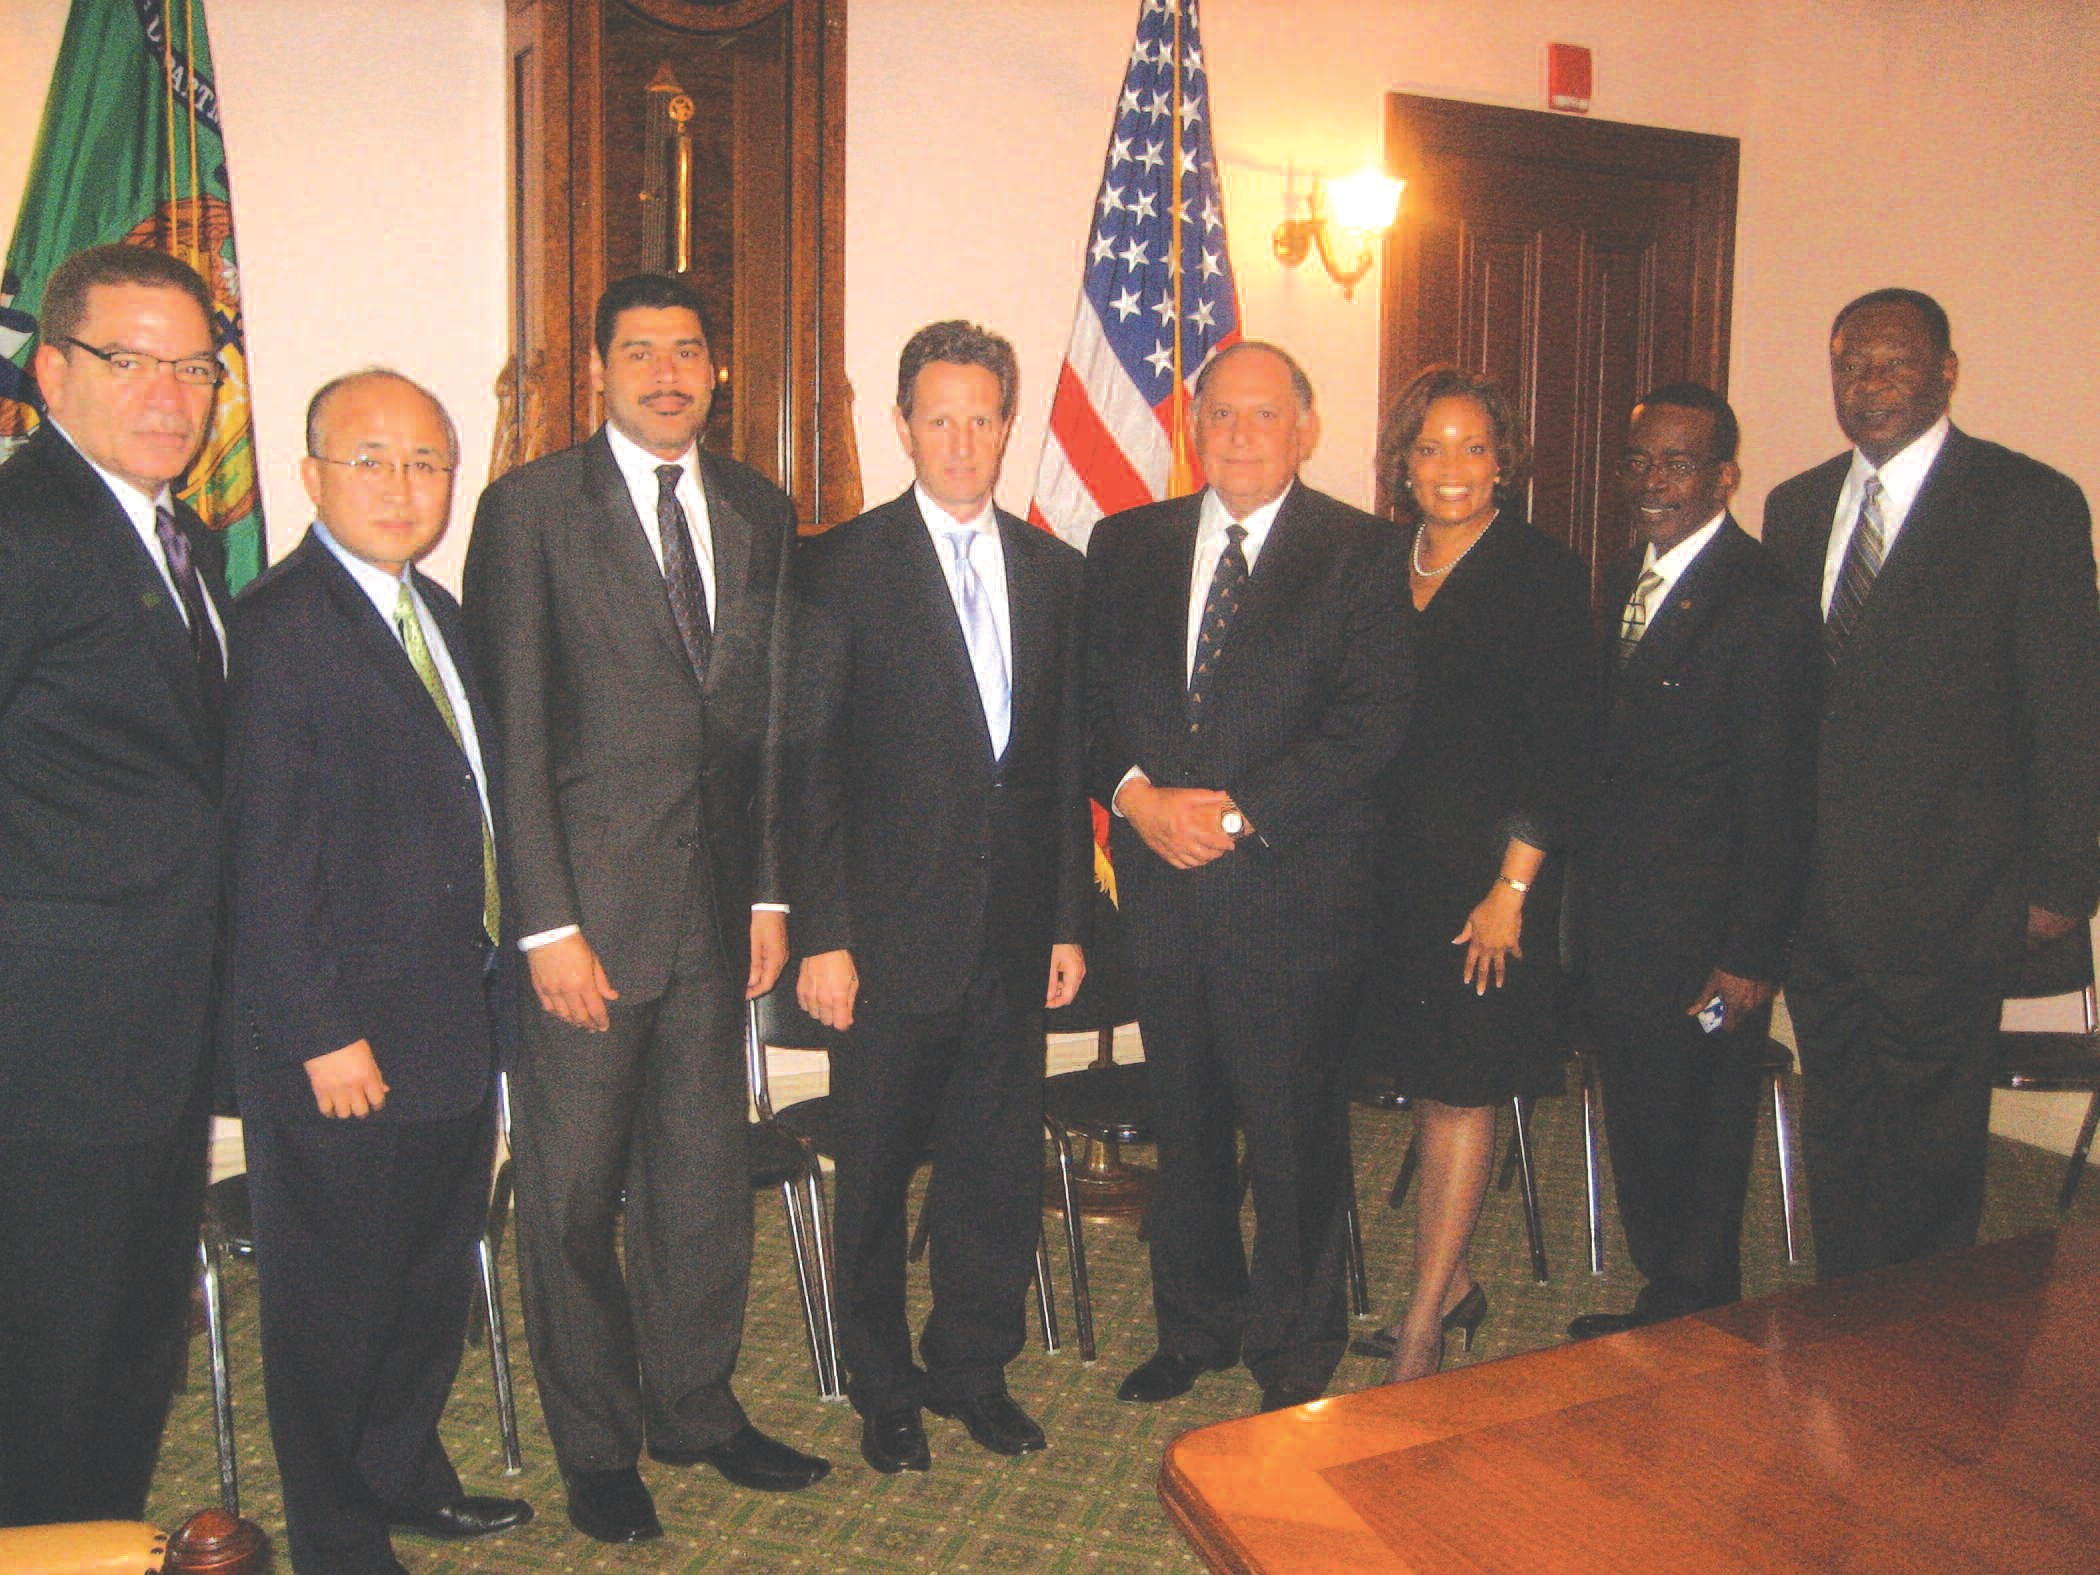 (Left to Right) Michael Grant, Paul Hyon, B. Doyle Mitchell, Jr, Treasury Secretary Timothy Geithner, Ignacio Urrabazo, Jr. , Kim D. Saunders, James Young, and Robert E. James.